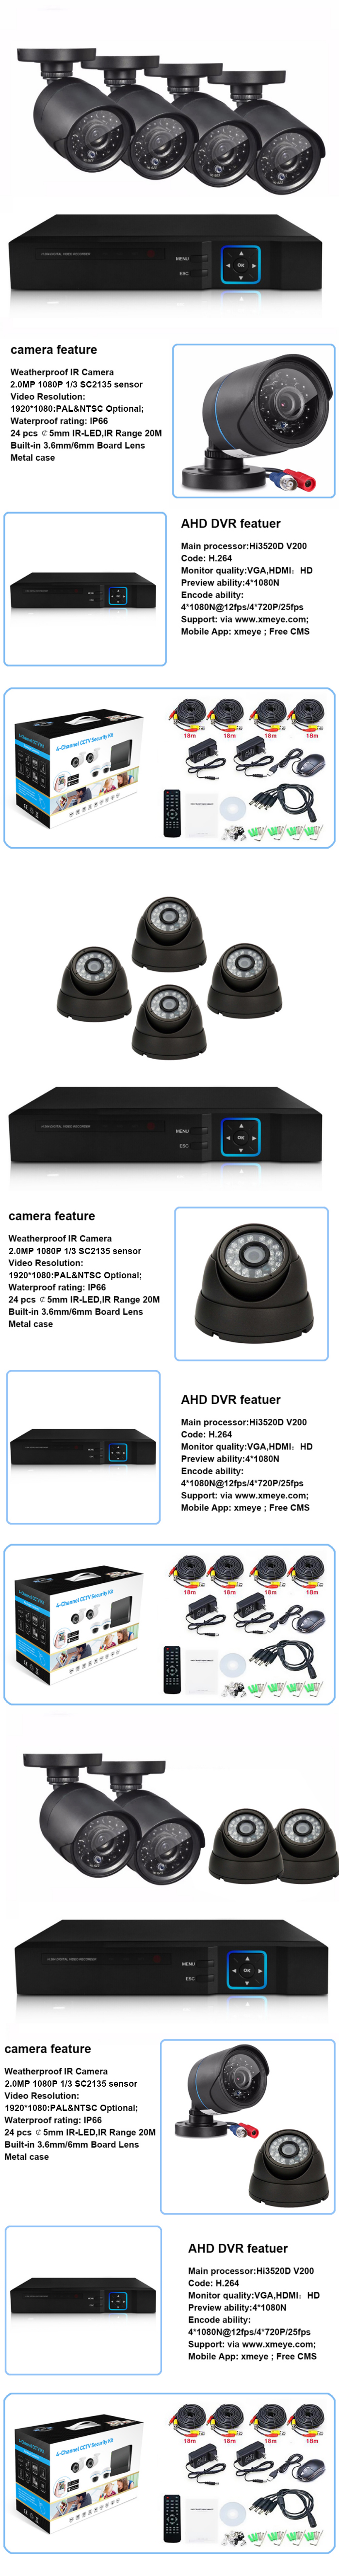 1080P 4ch AHD bullet/dome HD Outdoor/indoor Home Security Camera System h264/h265 Monitoring DVR kit